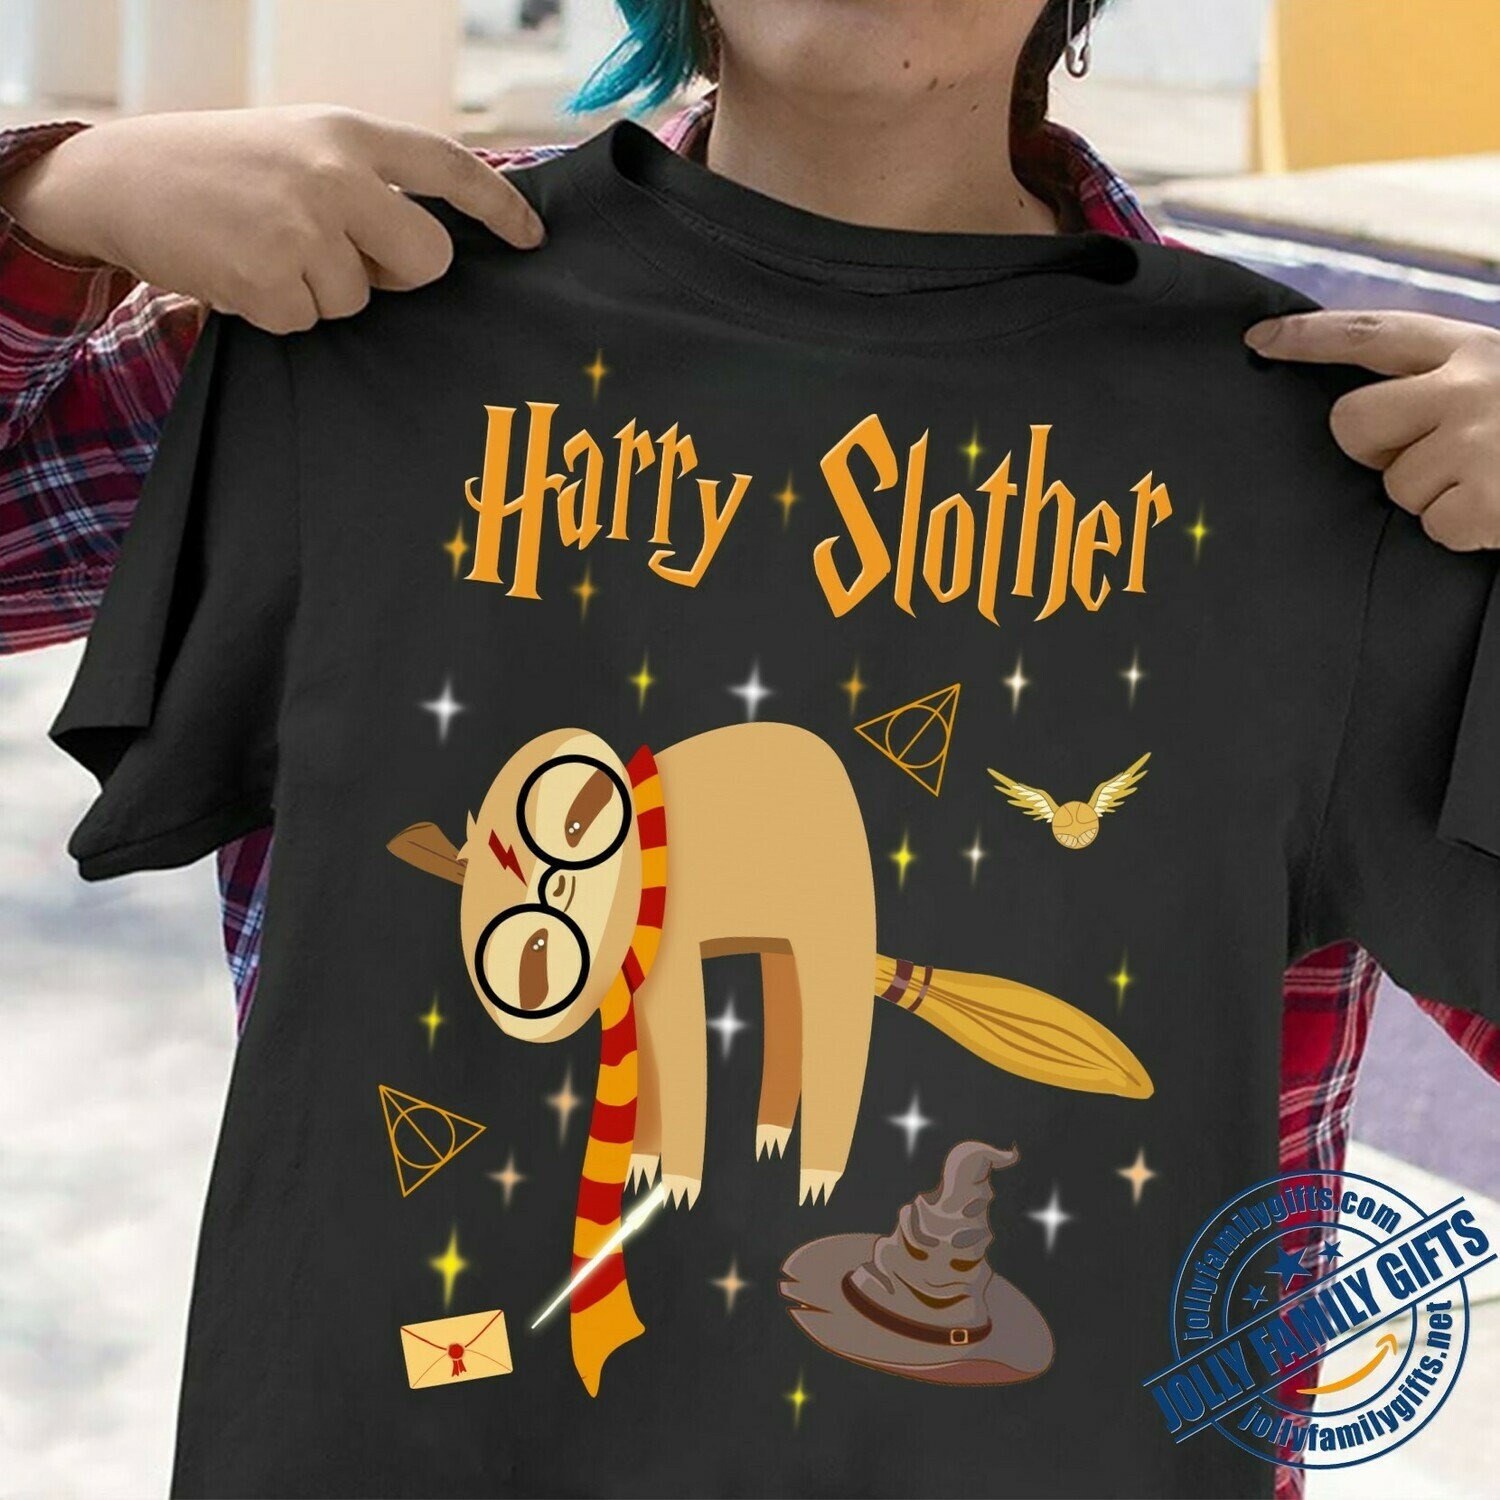 Harry Slother Funny Sloth Harry Potter Magical Wizard Potter TShirt for Shirt for s Men Women Graphic Unisex T-Shirt Hoodie Sweatshirt Sweater Plus Size for Ladies Women Men Kids Youth Gifts Tee Jolly